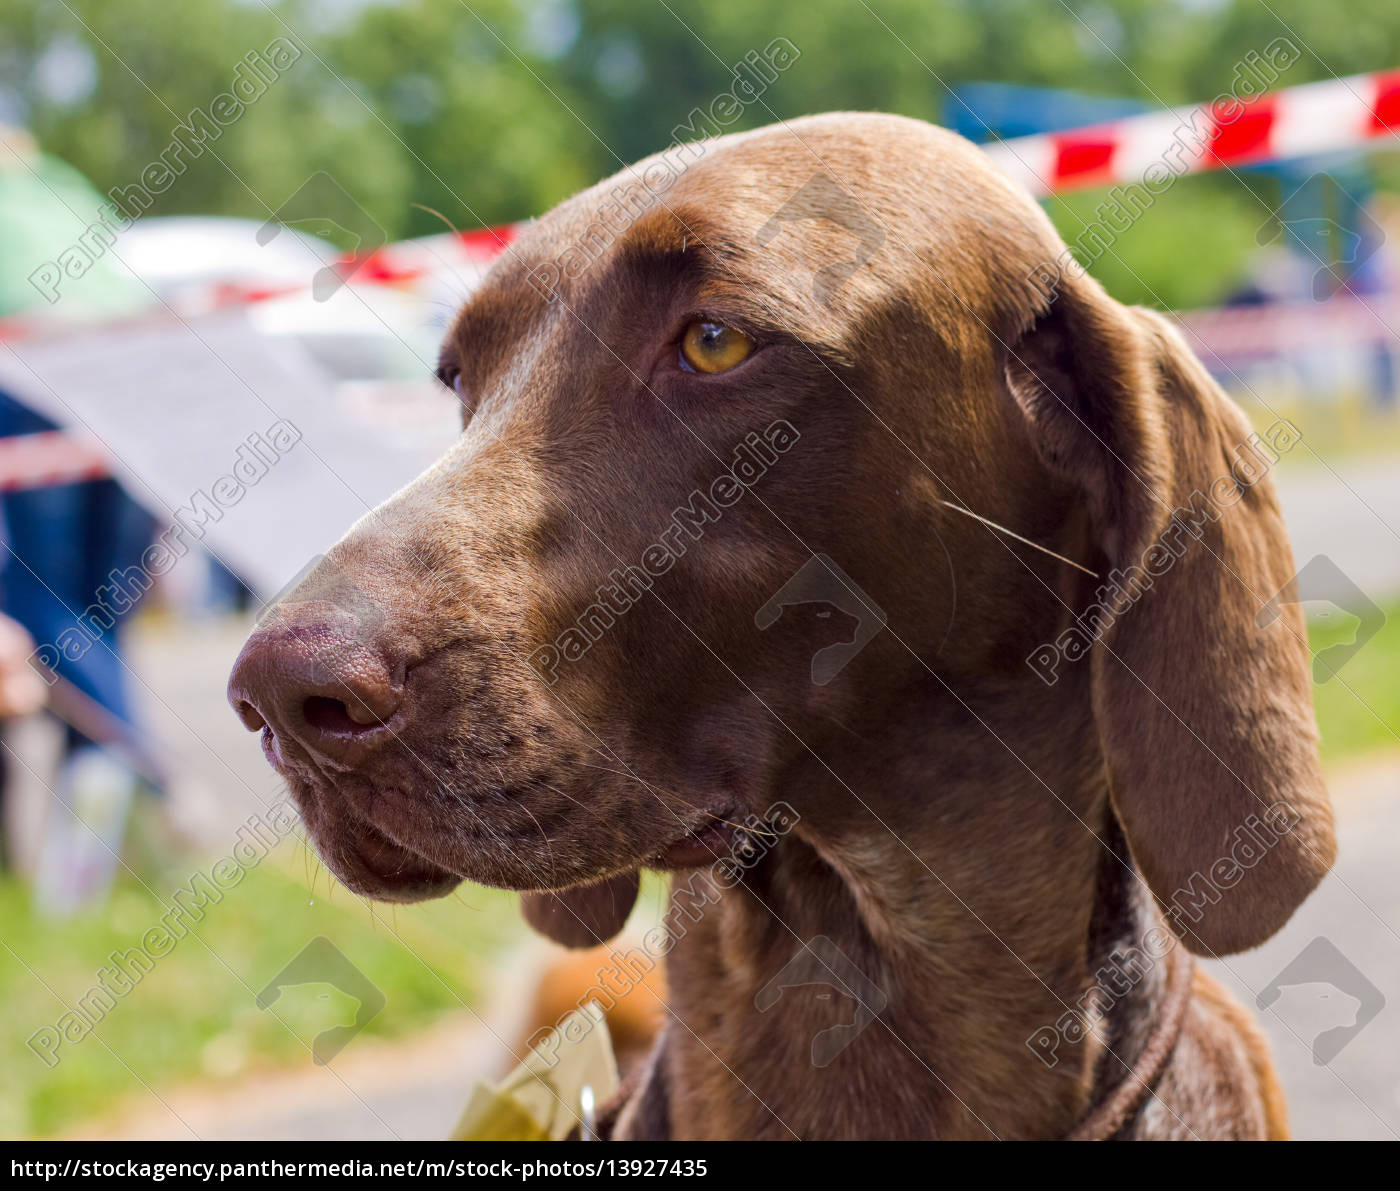 close-up, portrait, of, the, dog, deutsch - 13927435